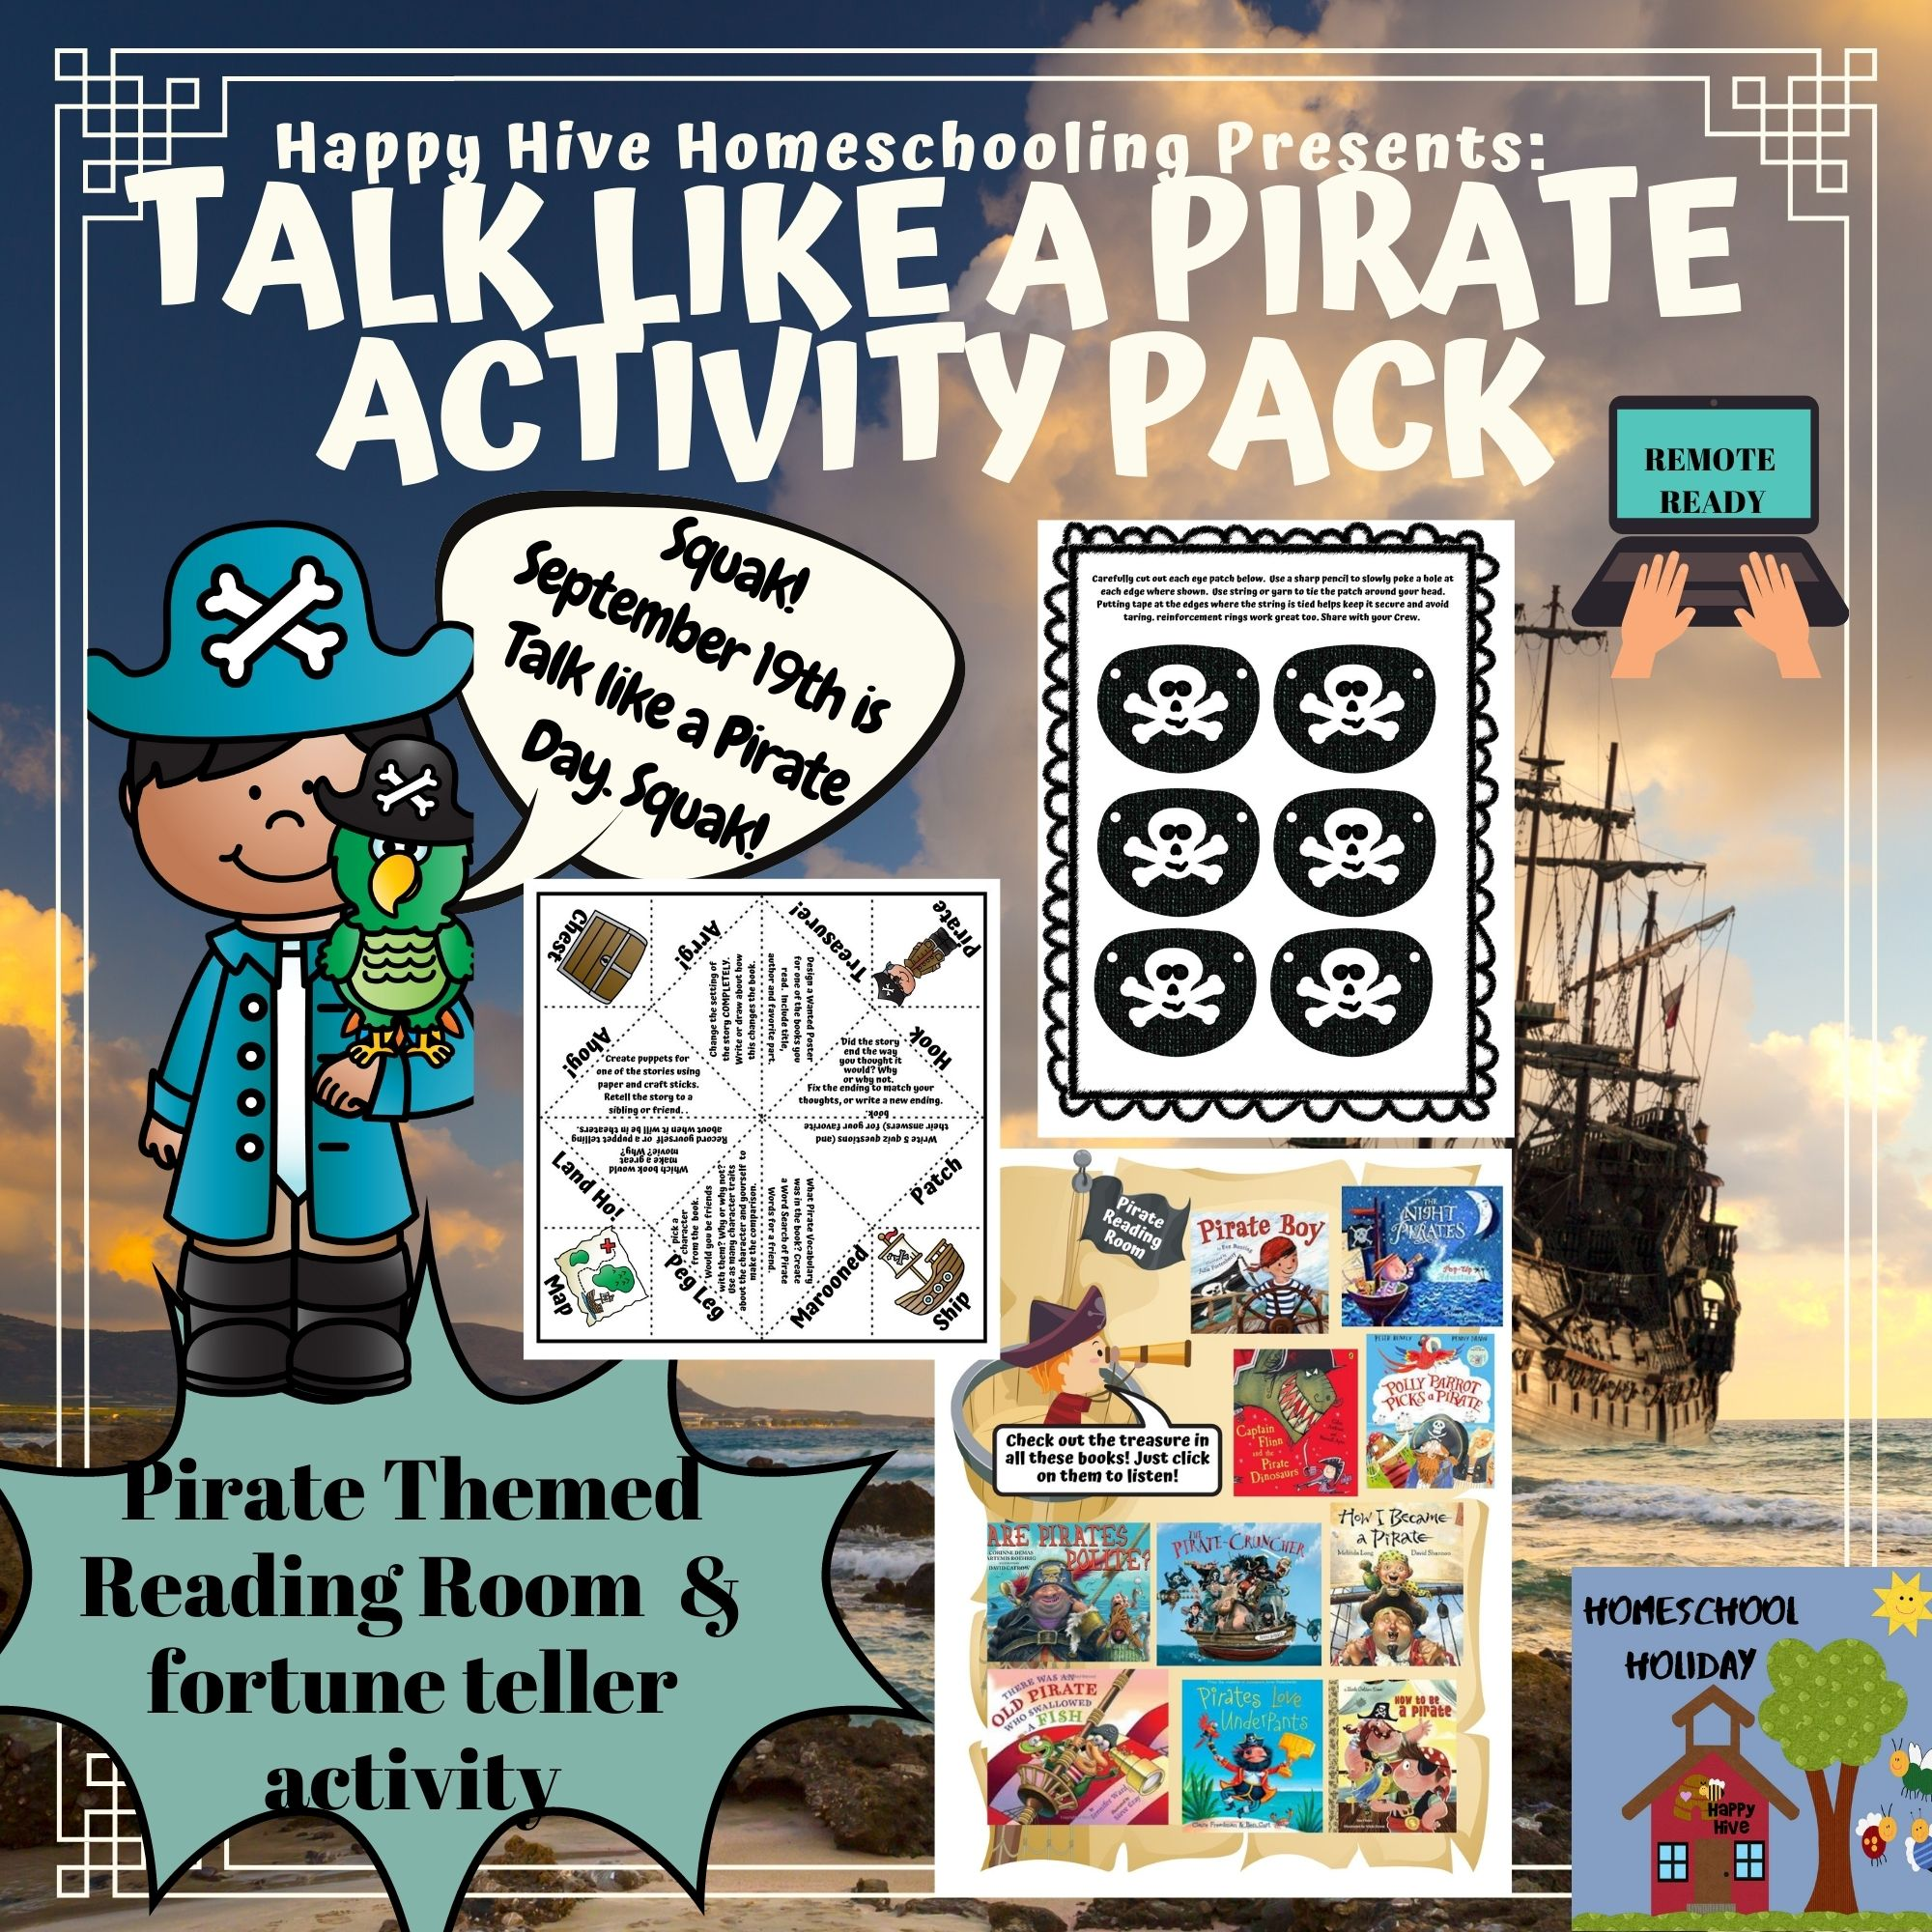 talk-like-a-pirate-activity-pack.jpg